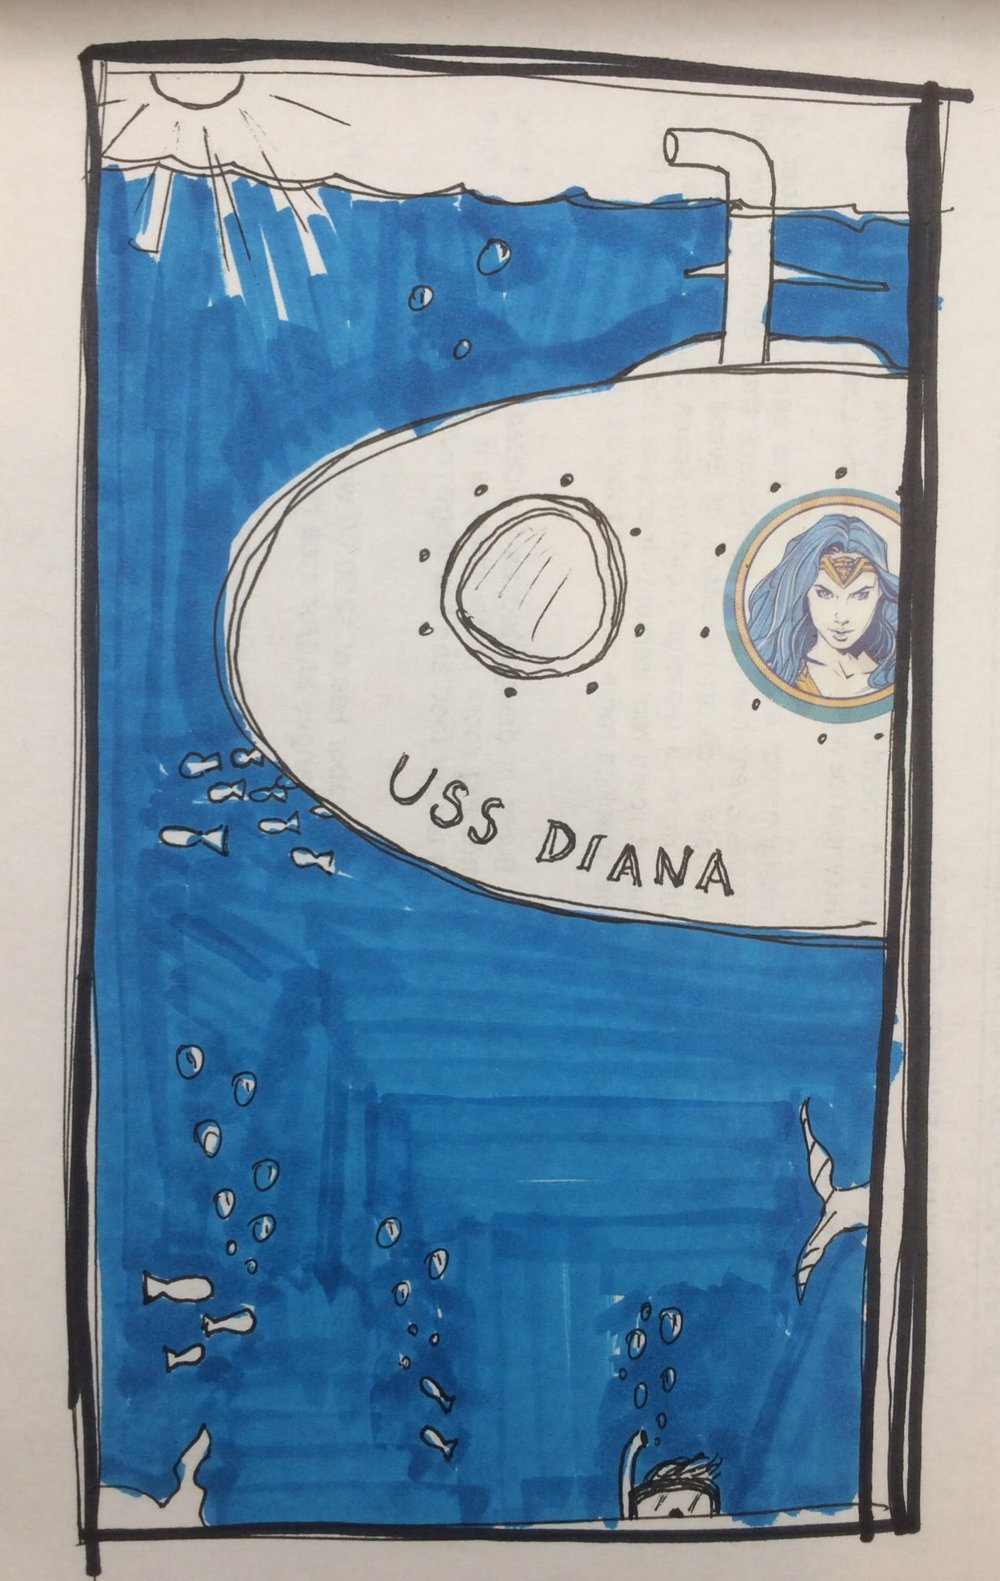 6. July 30, 2017 - Under the Sea